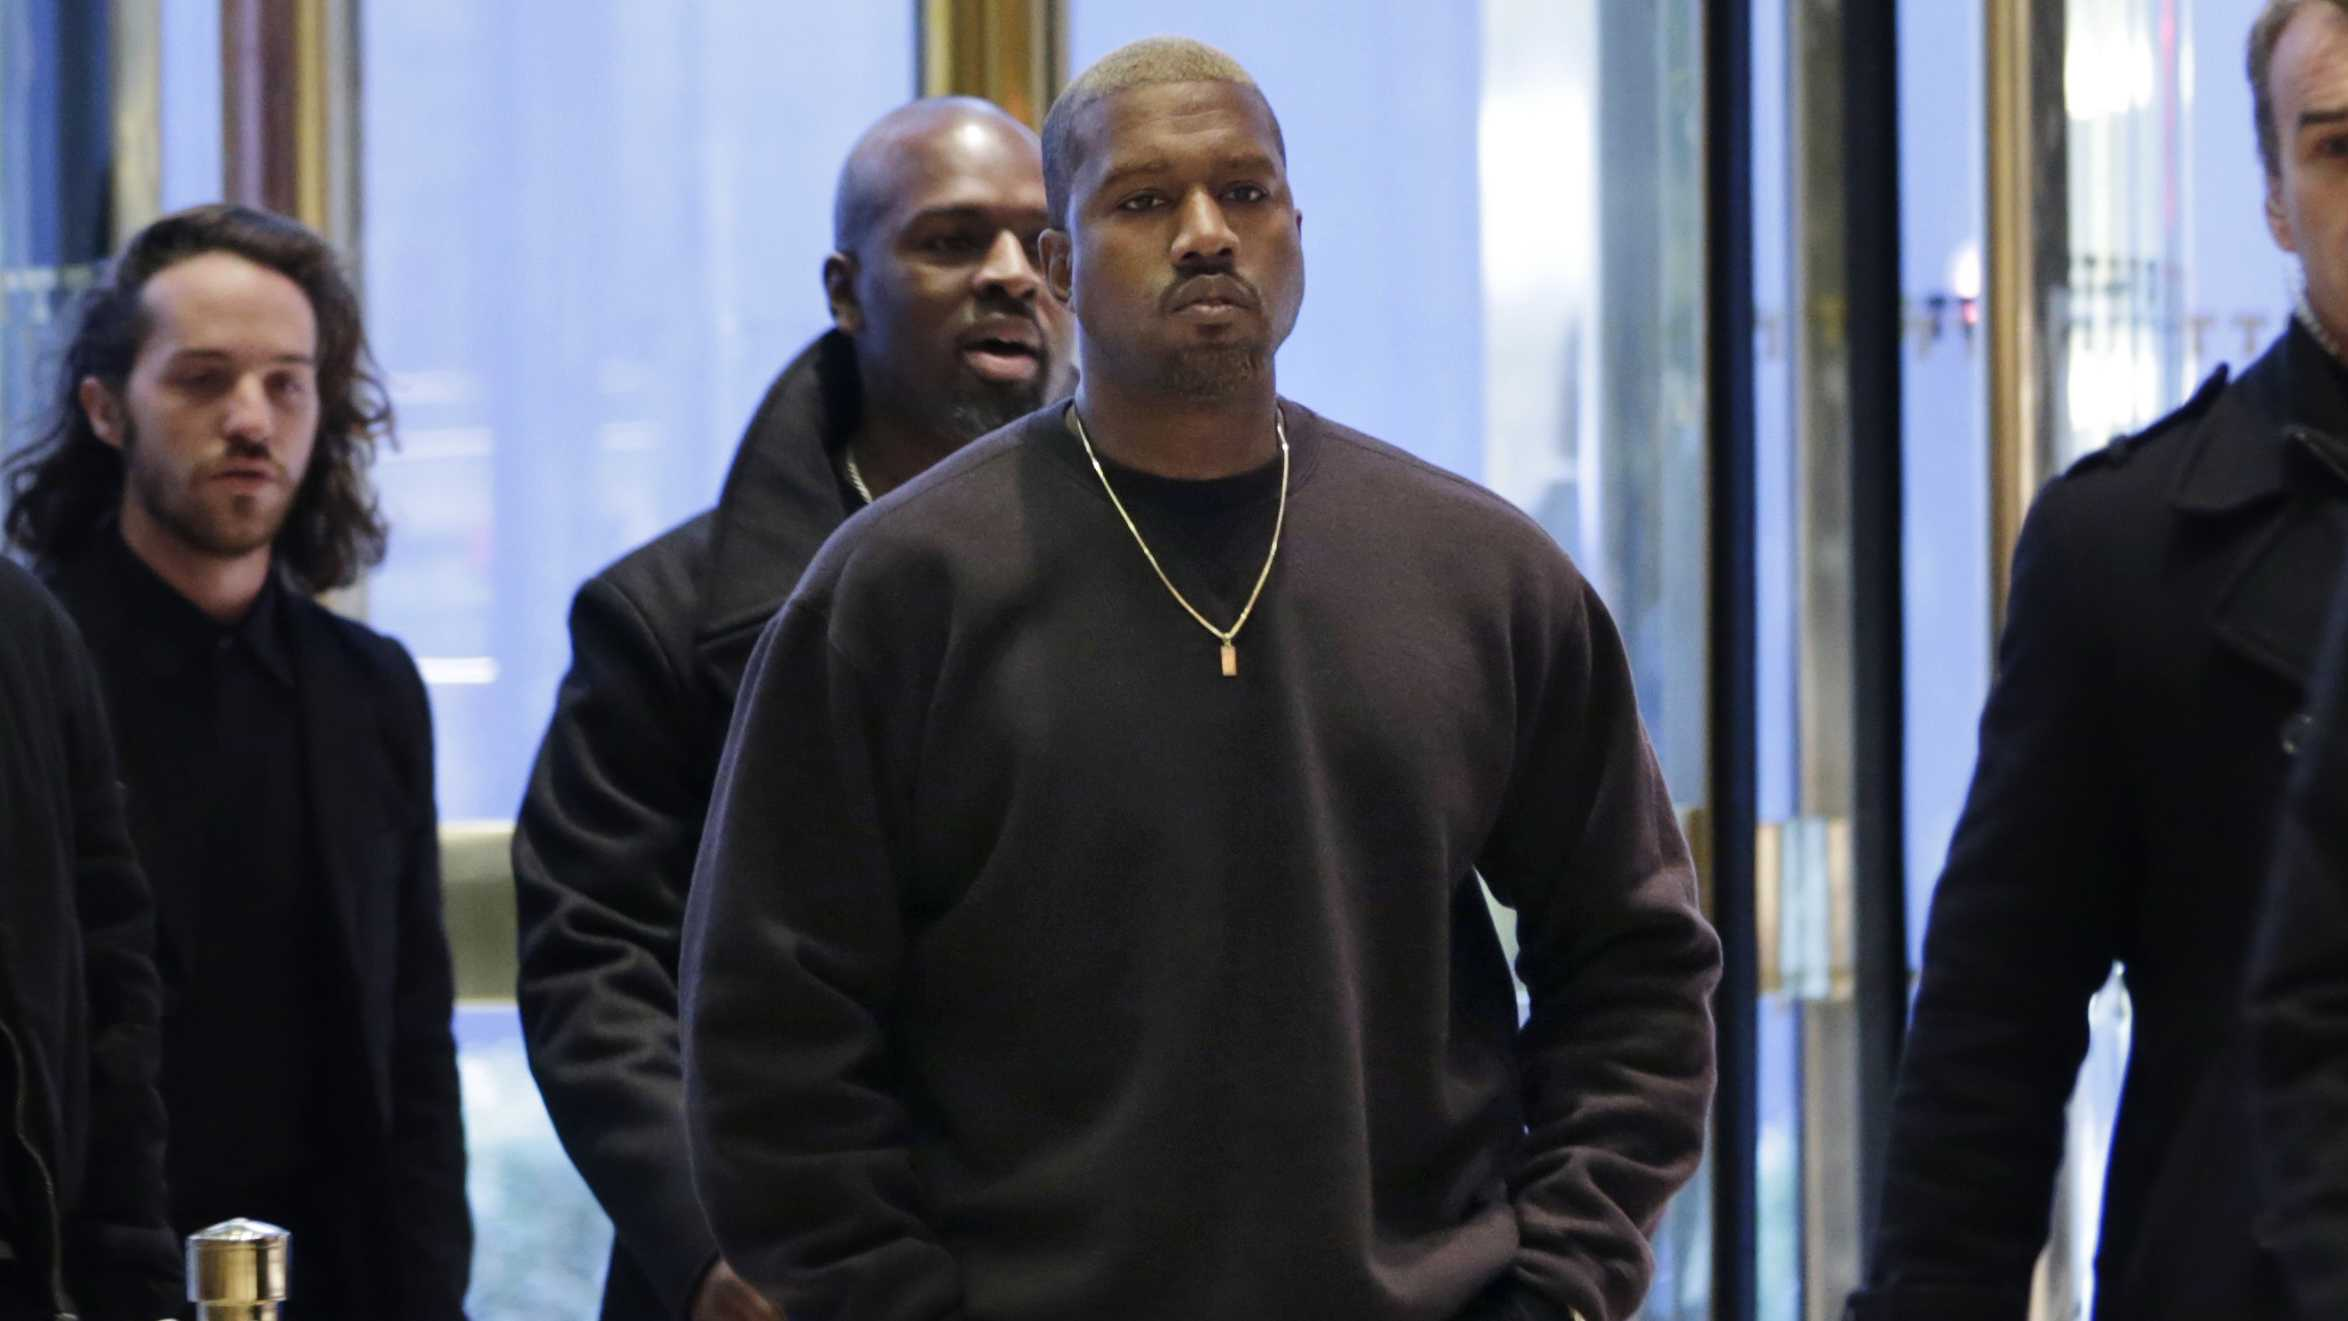 Kanye West enters Trump Tower in New York, Tuesday, Dec. 13, 2016.